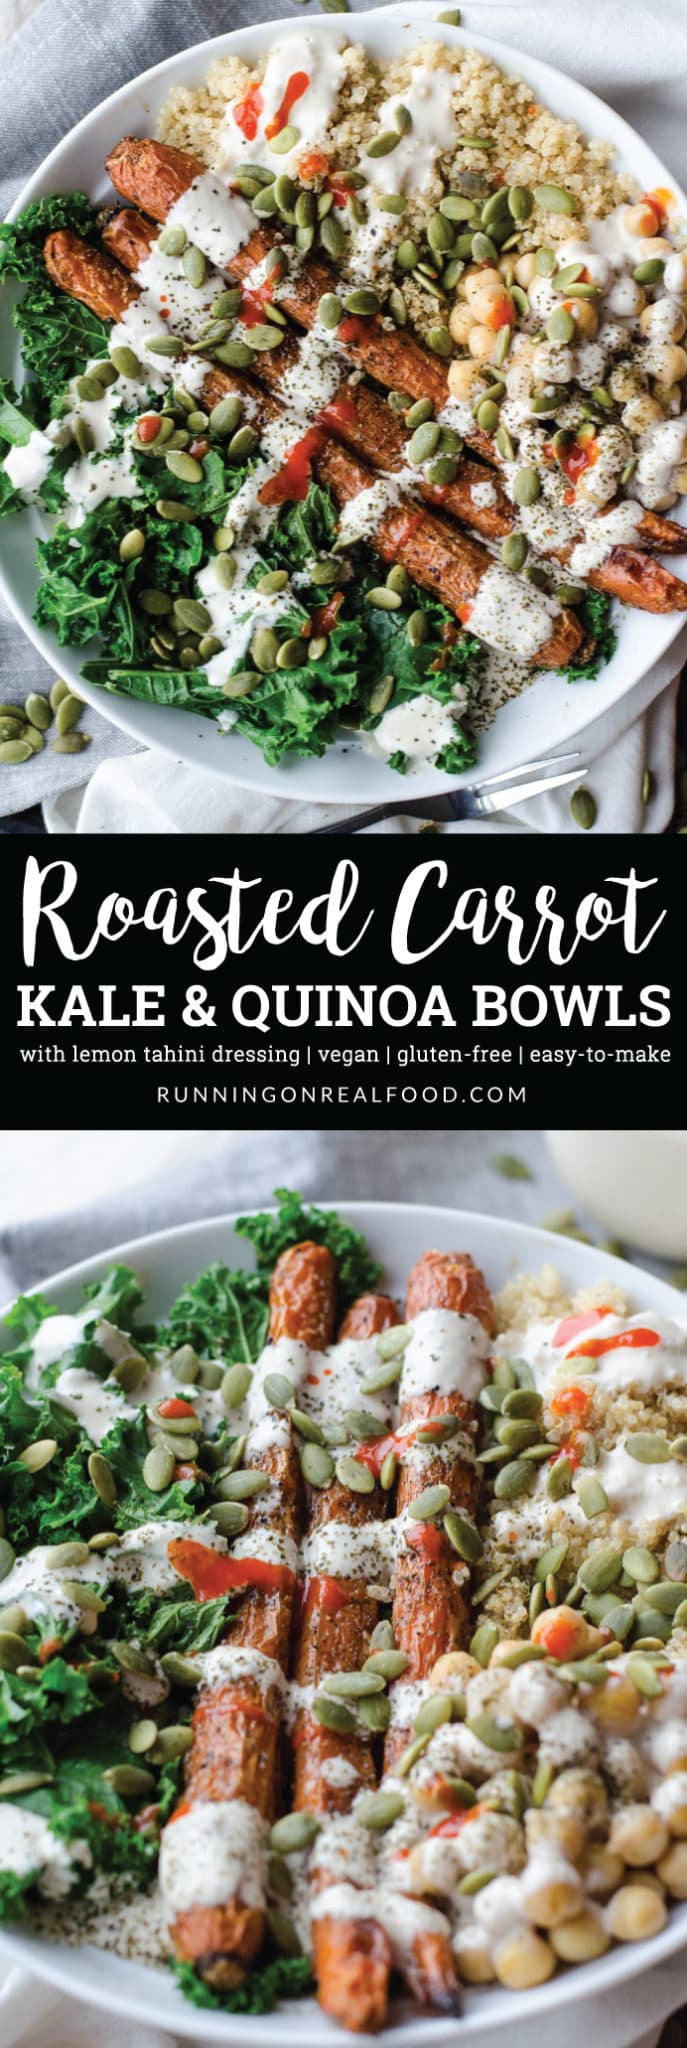 Try this Roasted Carrot Kale and Quinoa Bowl with Chickpeas and Tahini Dressing for an amazing plant-based meal.